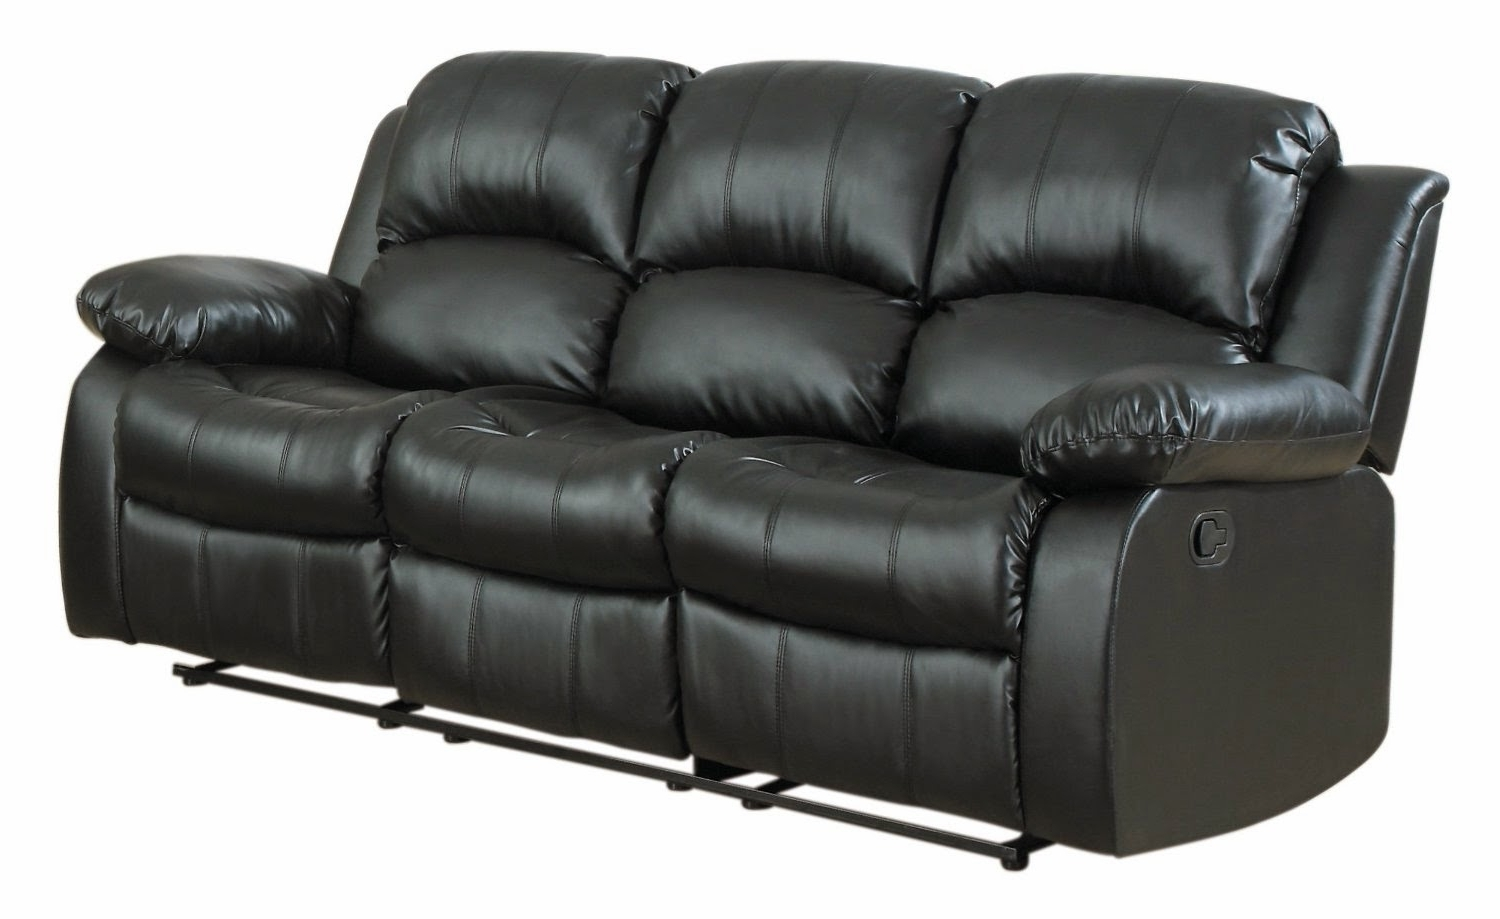 Berkline Sofas For 2019 Reclining Sofas For Sale: Berkline Leather Reclining Sofa Costco (View 5 of 20)